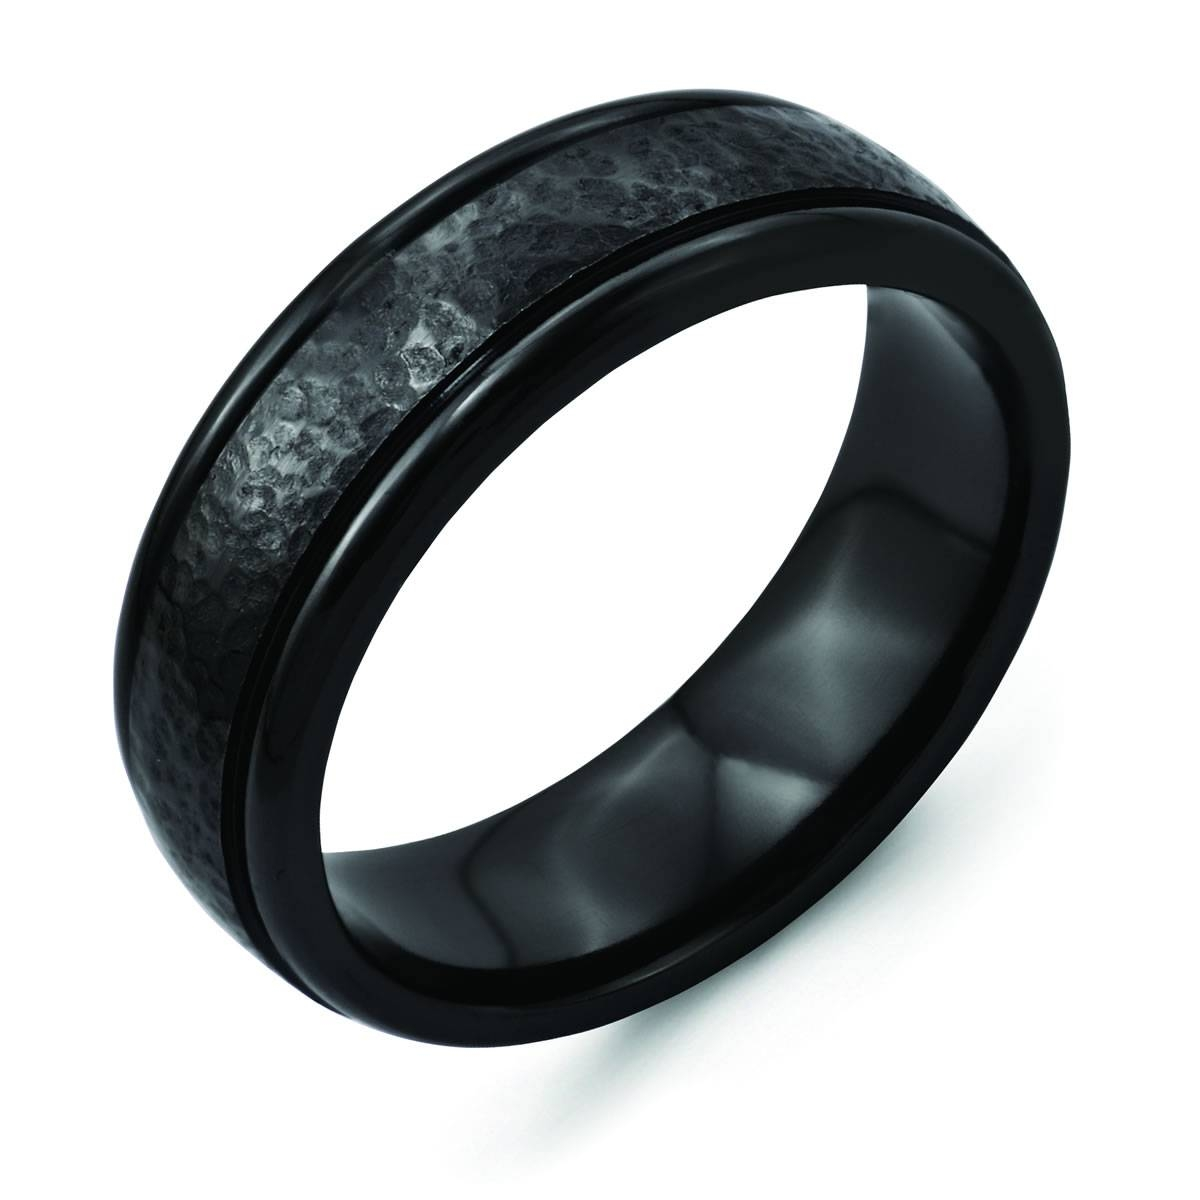 Titanium Black Ti Hammered Ridged Edge 7Mm Brushed Men's Wedding With Regard To Titanium Wedding Bands For Men (Gallery 15 of 15)